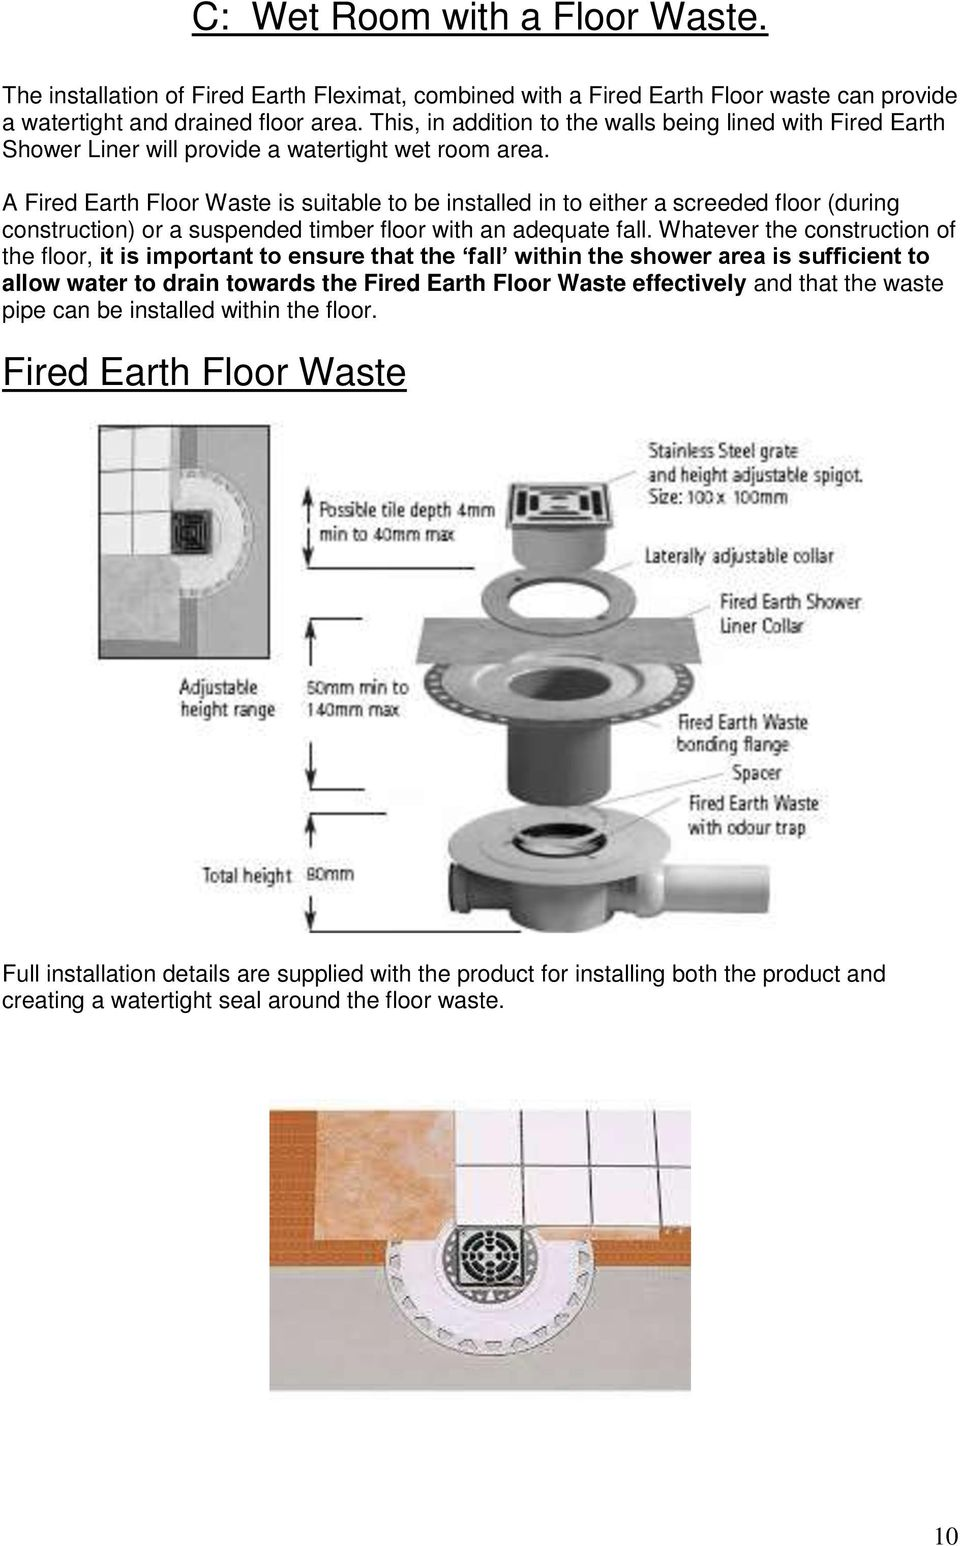 A Fired Earth Floor Waste is suitable to be installed in to either a screeded floor (during construction) or a suspended timber floor with an adequate fall.